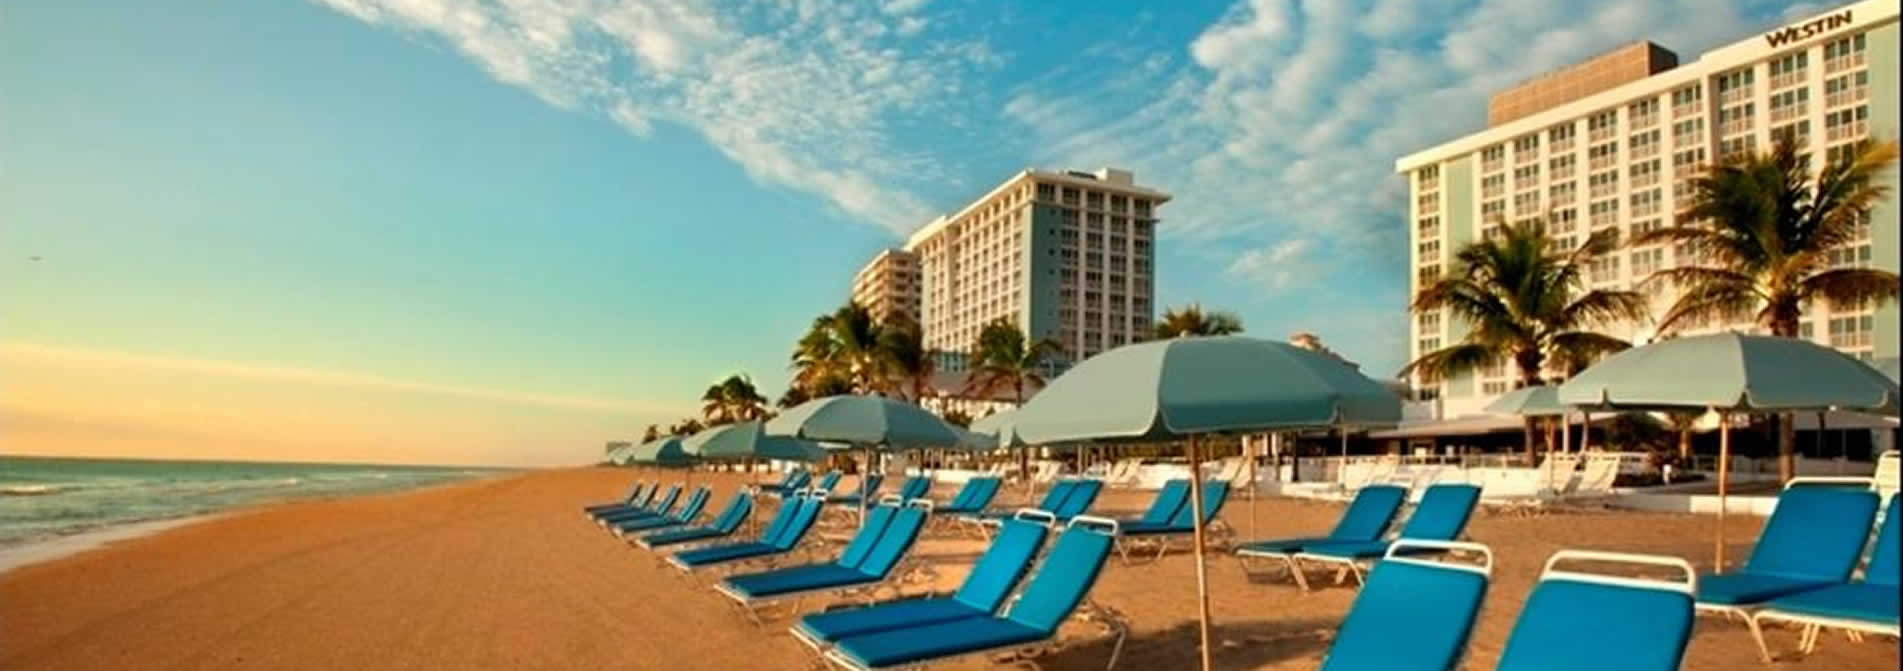 fort lauderdale hotels call 800-327-1390 for booking now